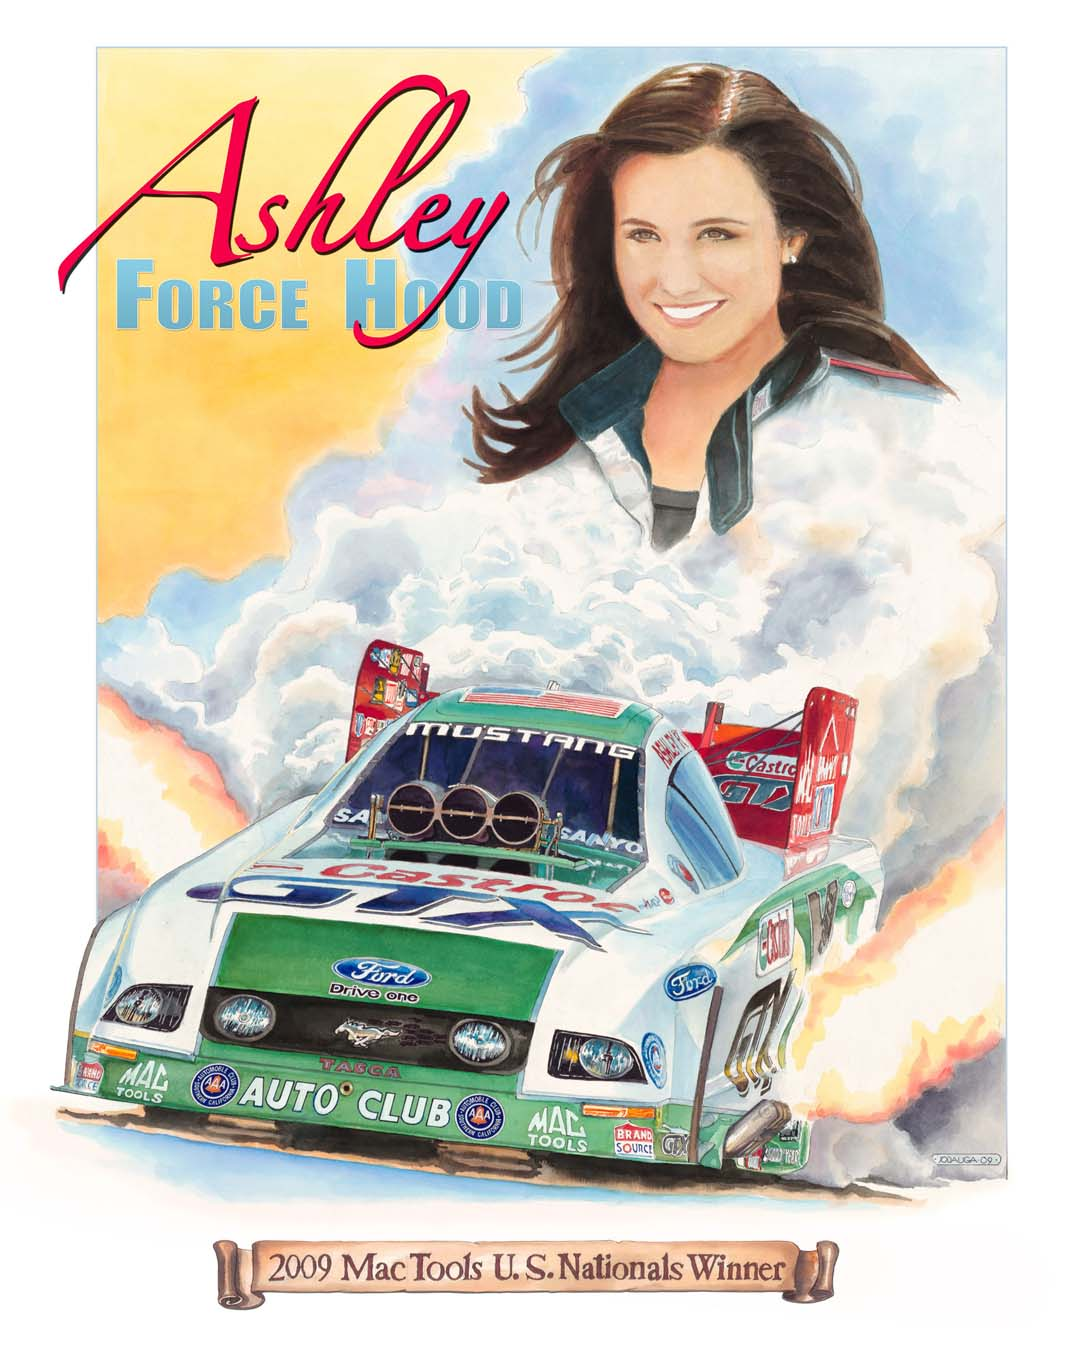 John Force commissioned Jodauga to create this painting of his daughter, Ashley, in 2009 that was presented to her at the 2009 NHRA Finals.